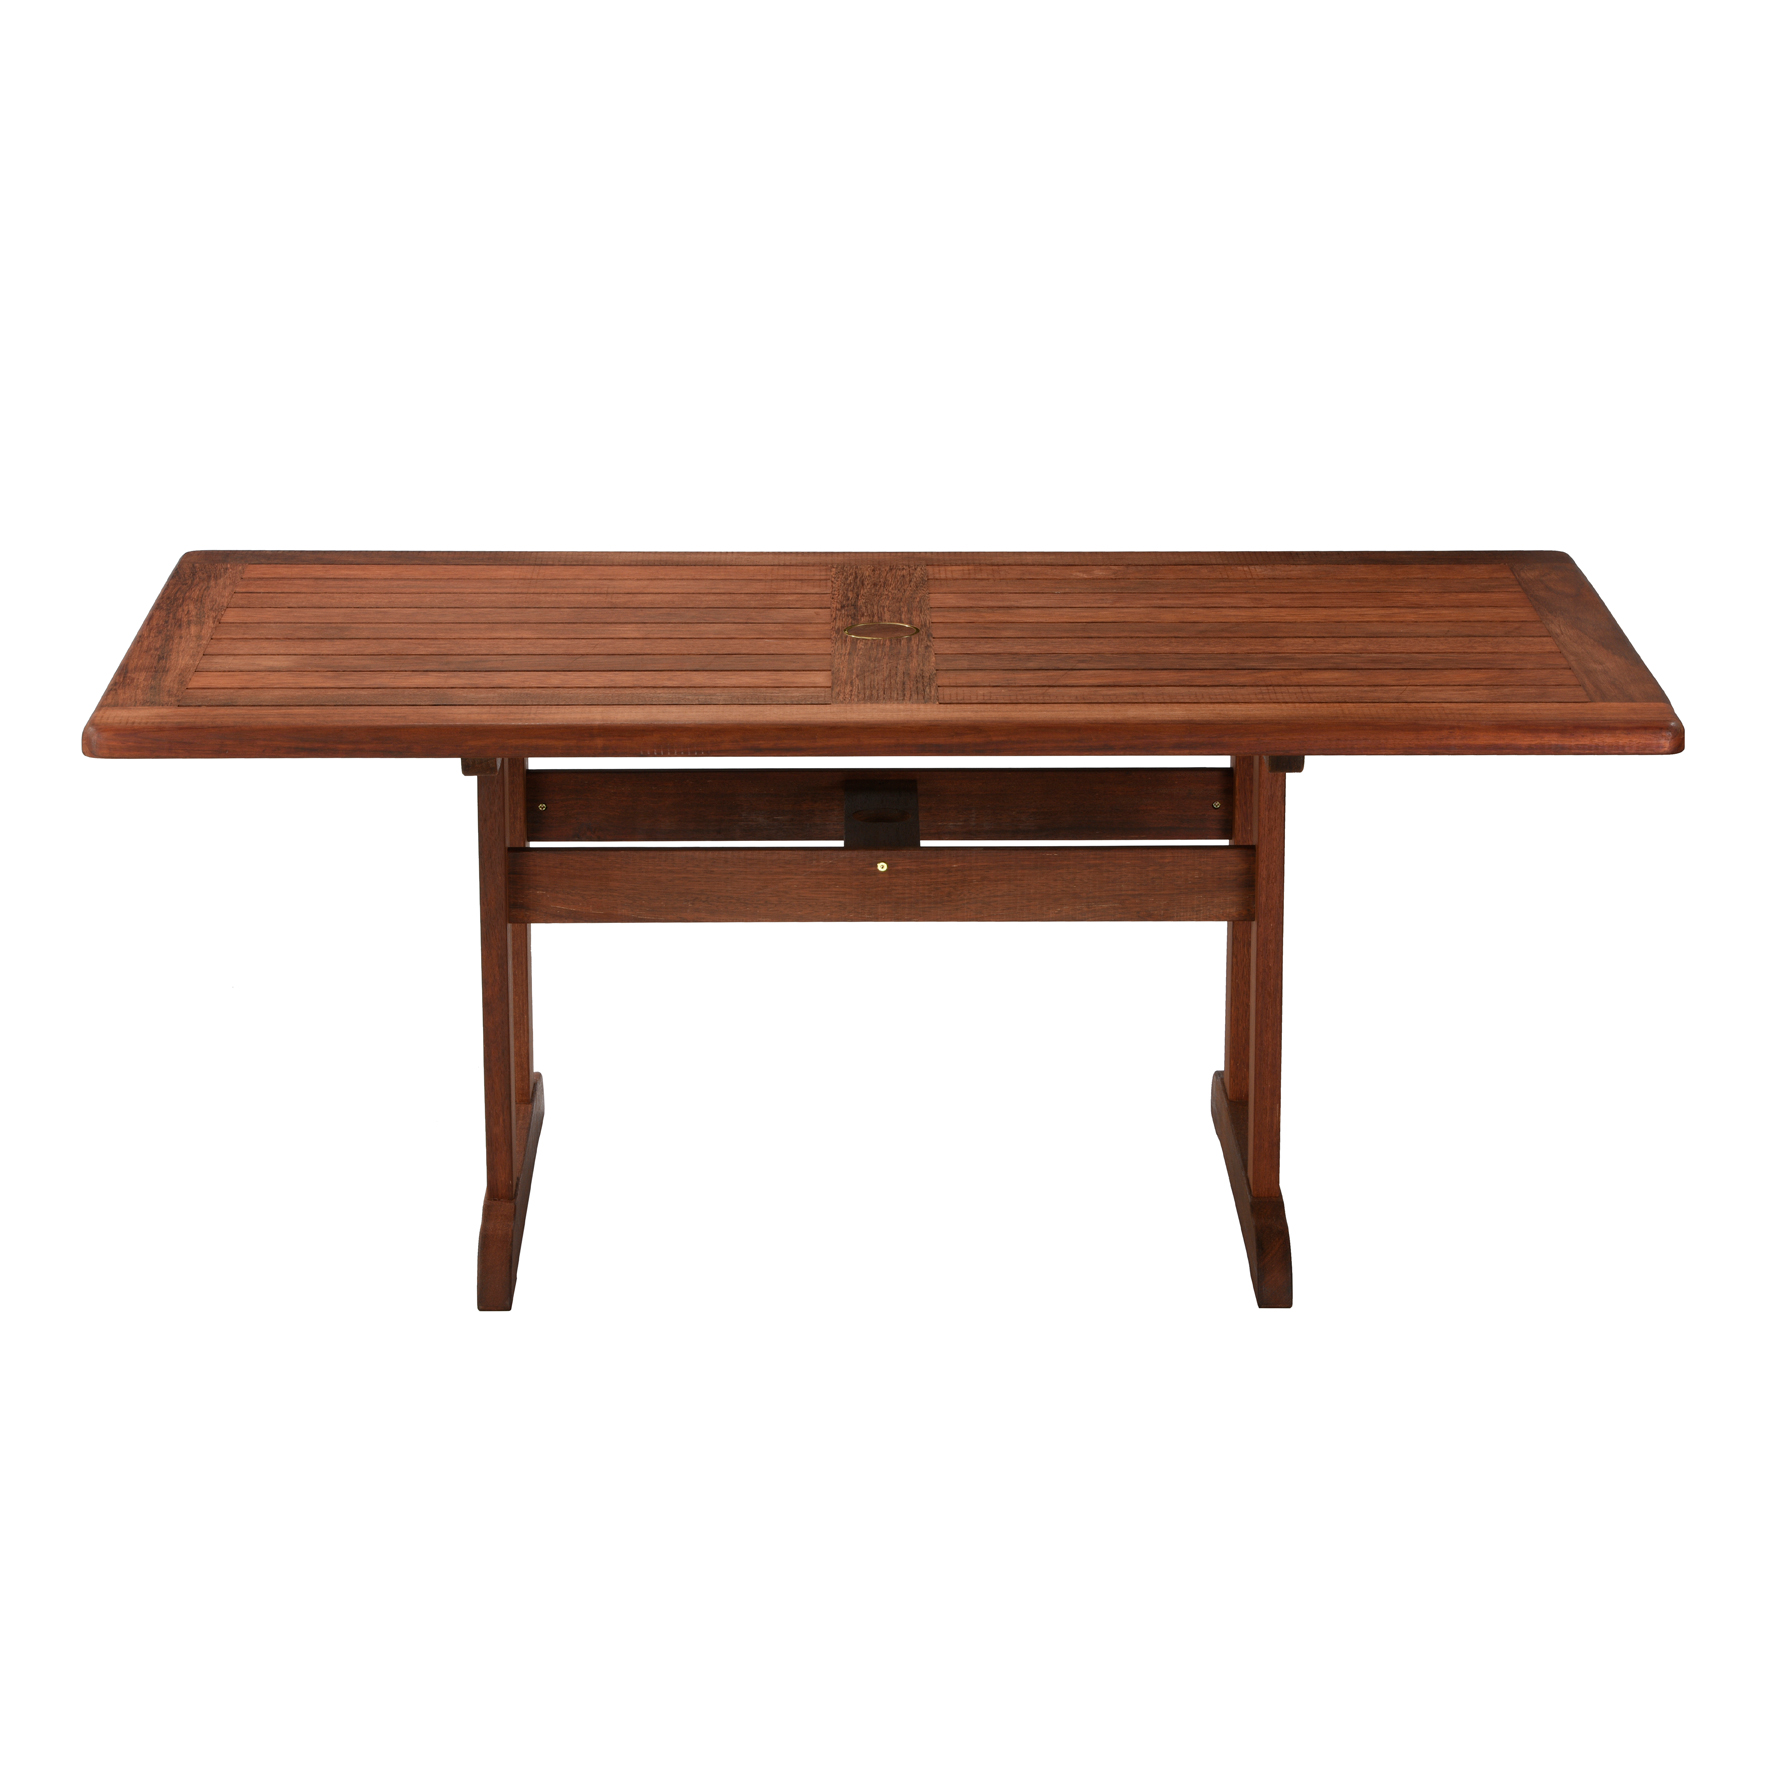 Kelmscott Dining Table Merbau Wood Abaca